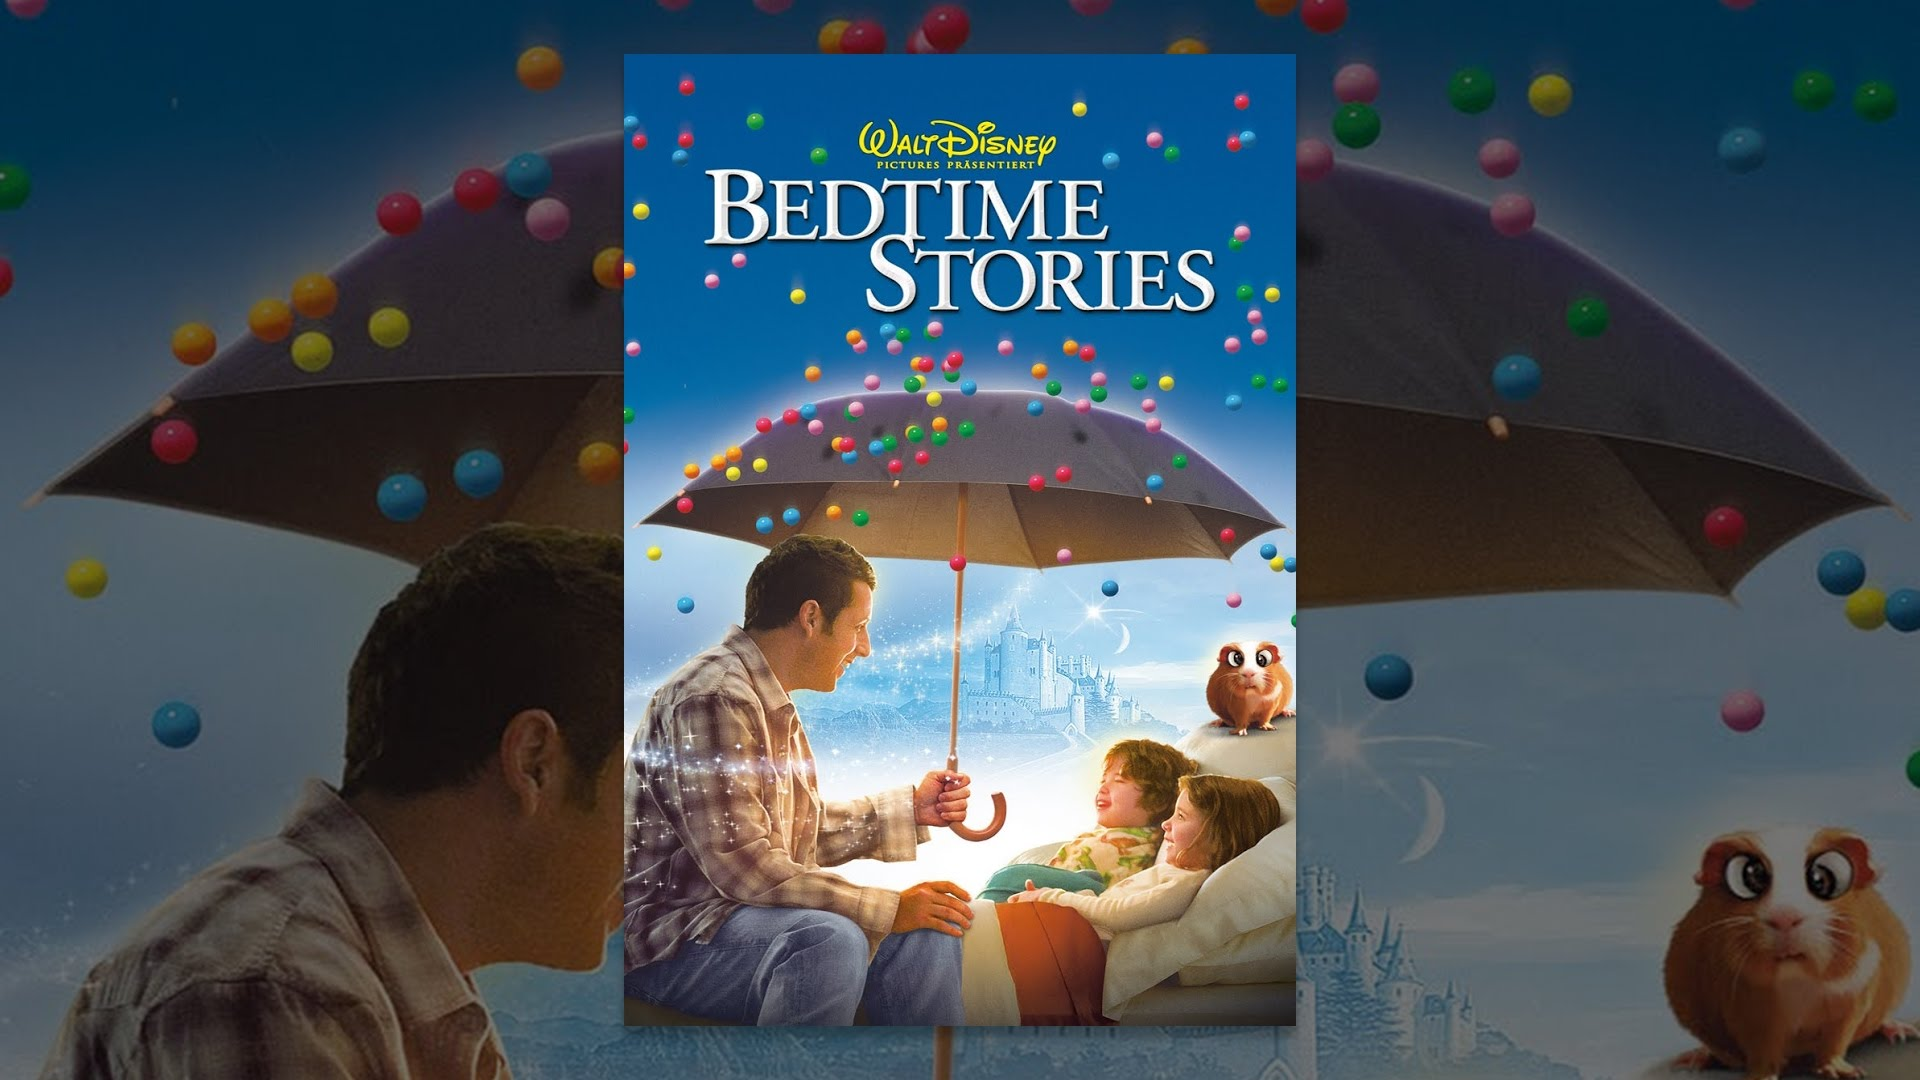 Images of Bedtime Stories Youtube - #rock-cafe